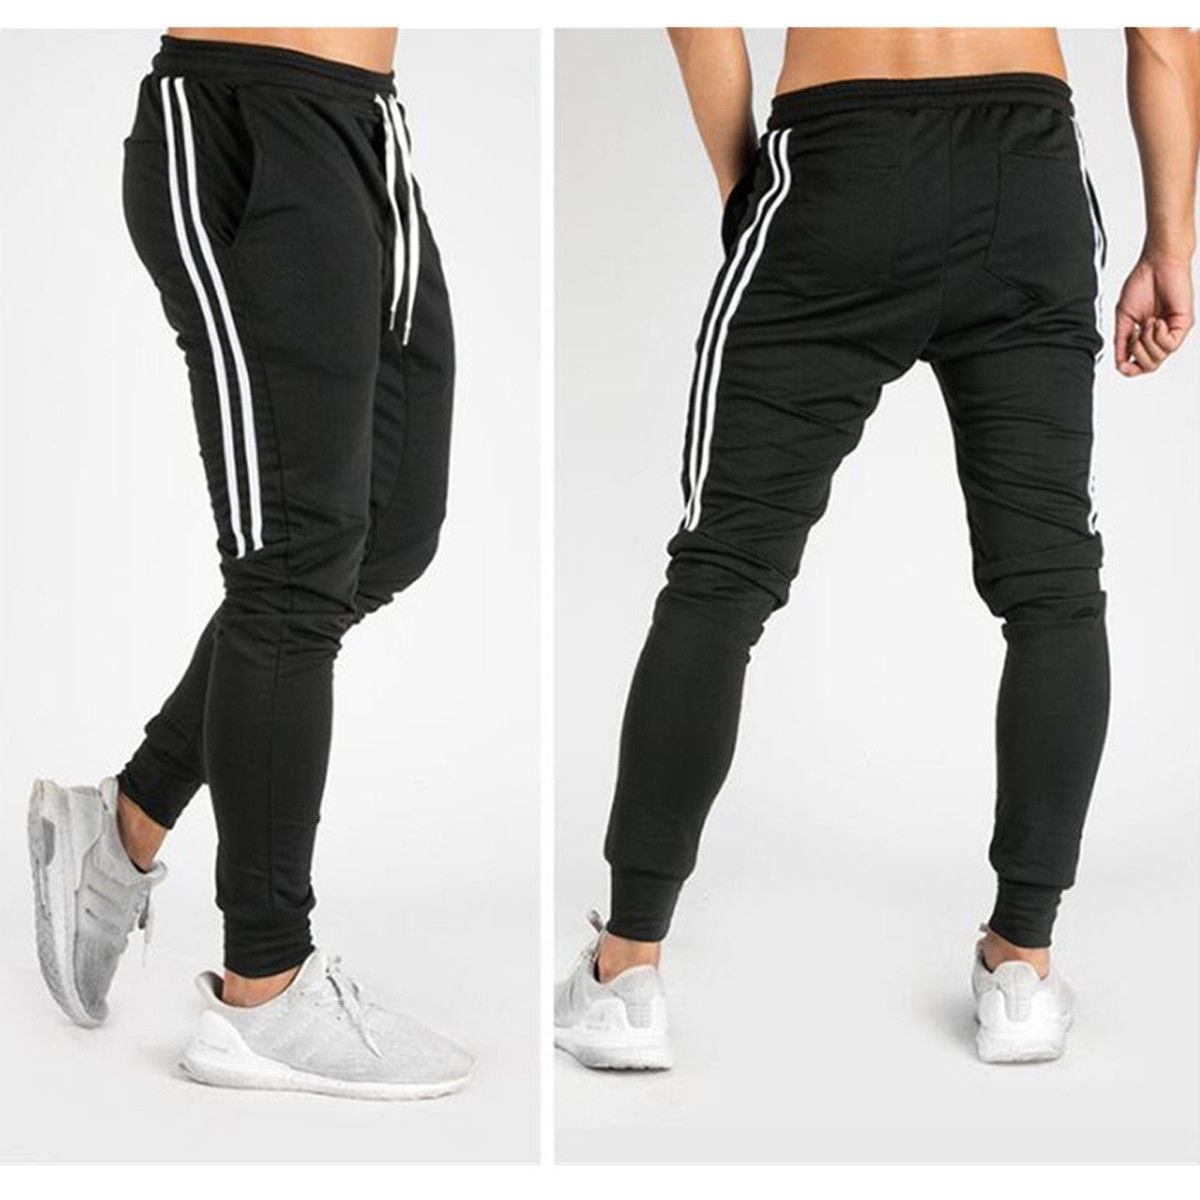 New Men's Hip Hop Sweatpants Fitness Joggers 2020 Spring Male Side Stripe High Street Hip Long Trousers Harem Pants Sweatpant